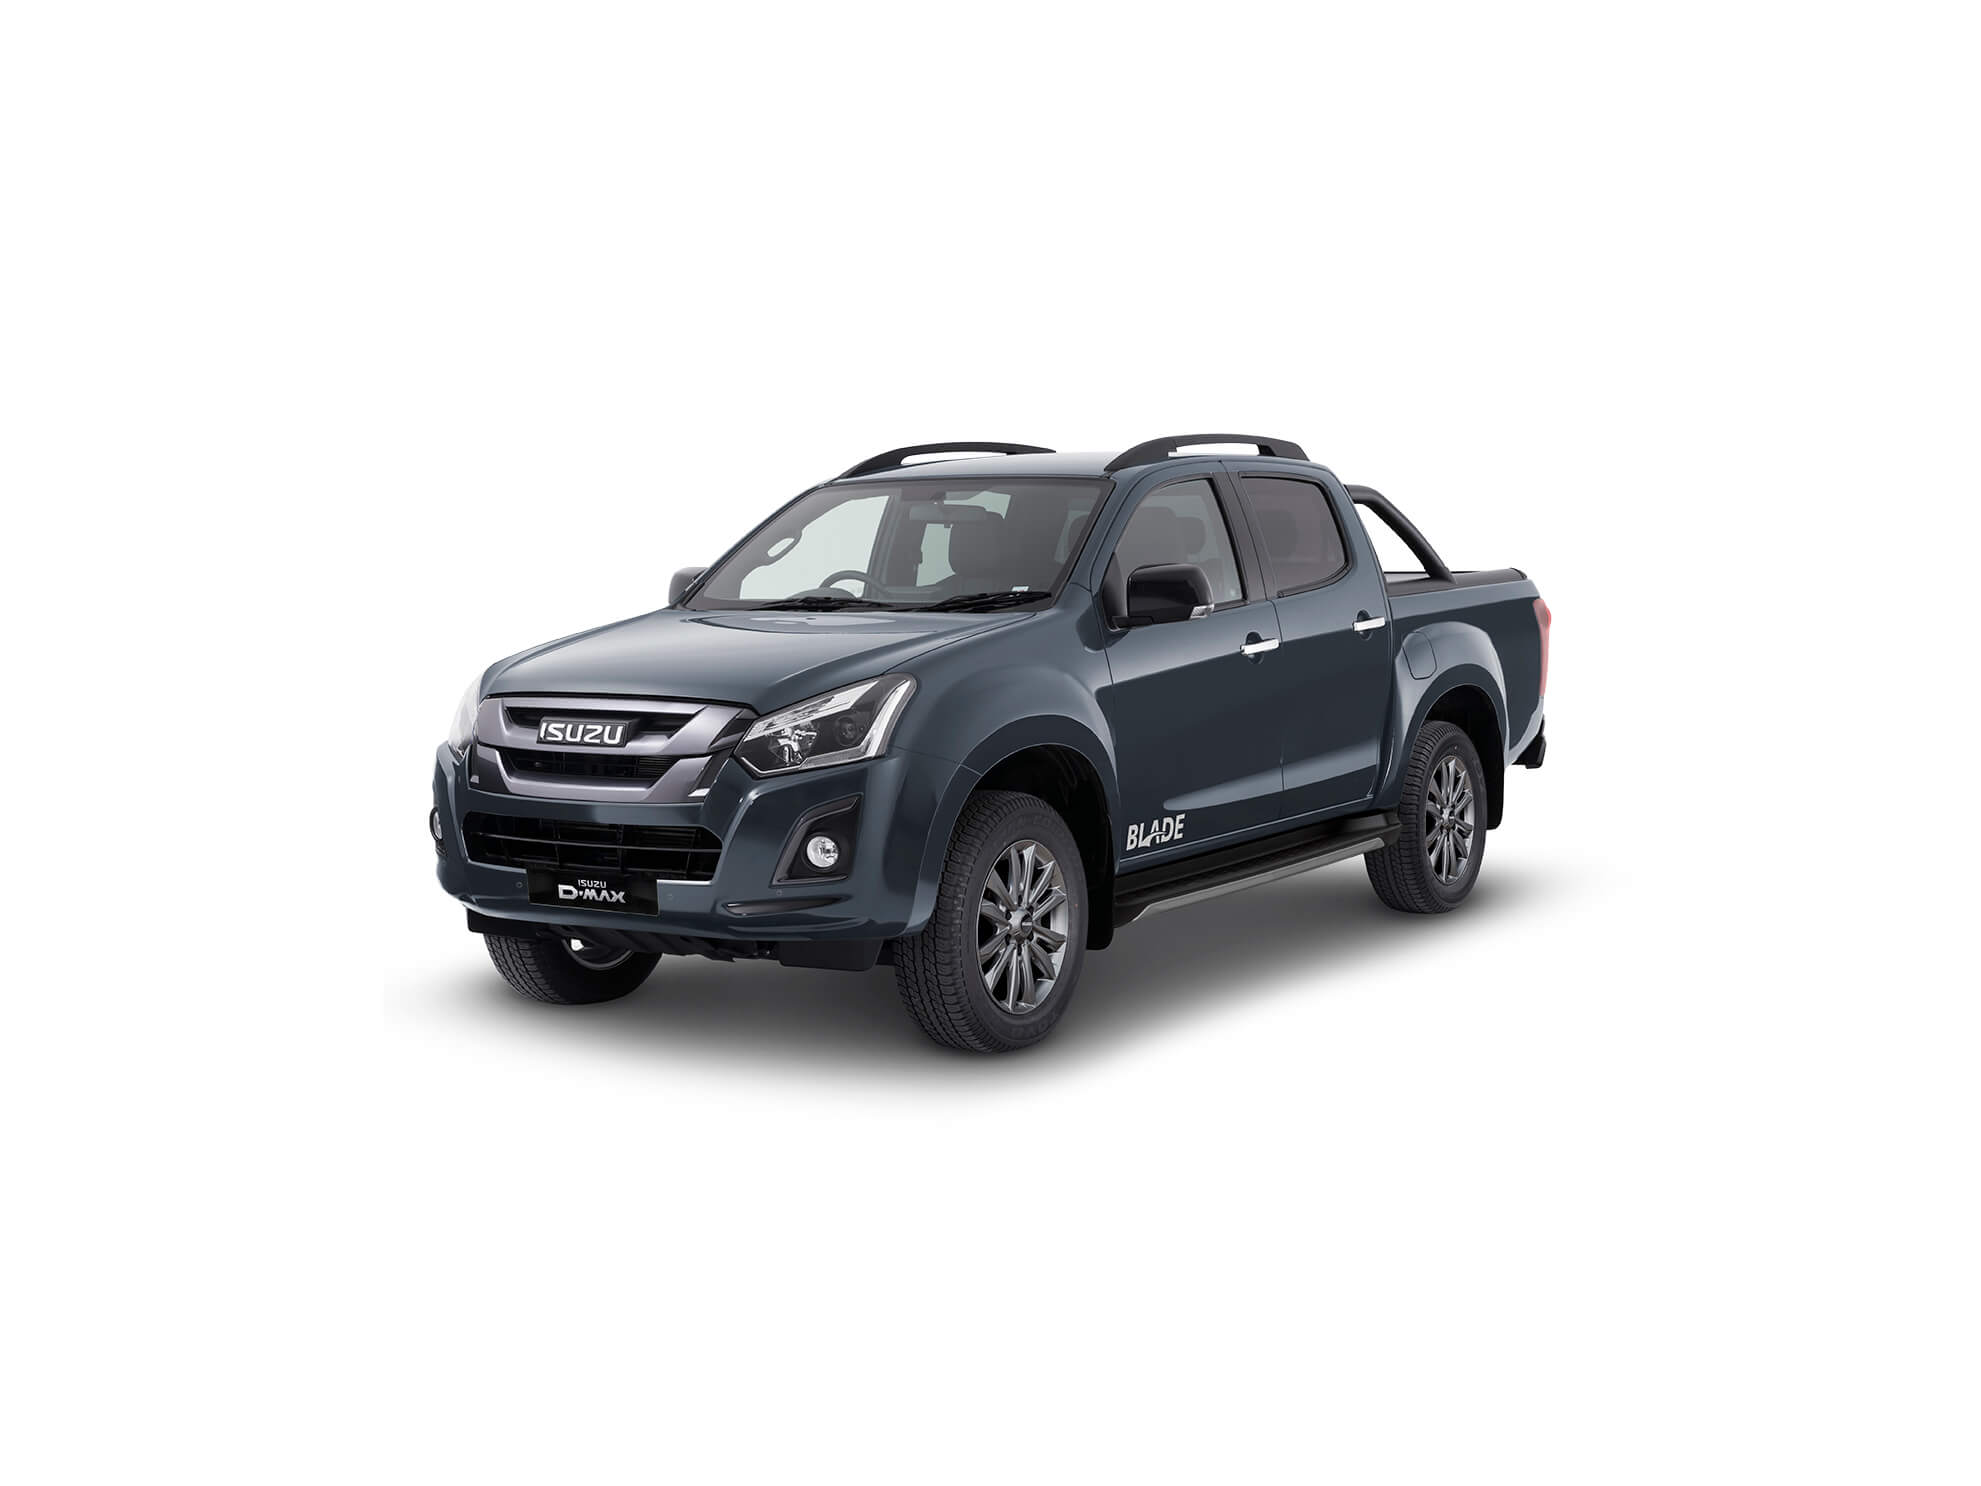 Front view of the Isuzu D-Max Blade in grey